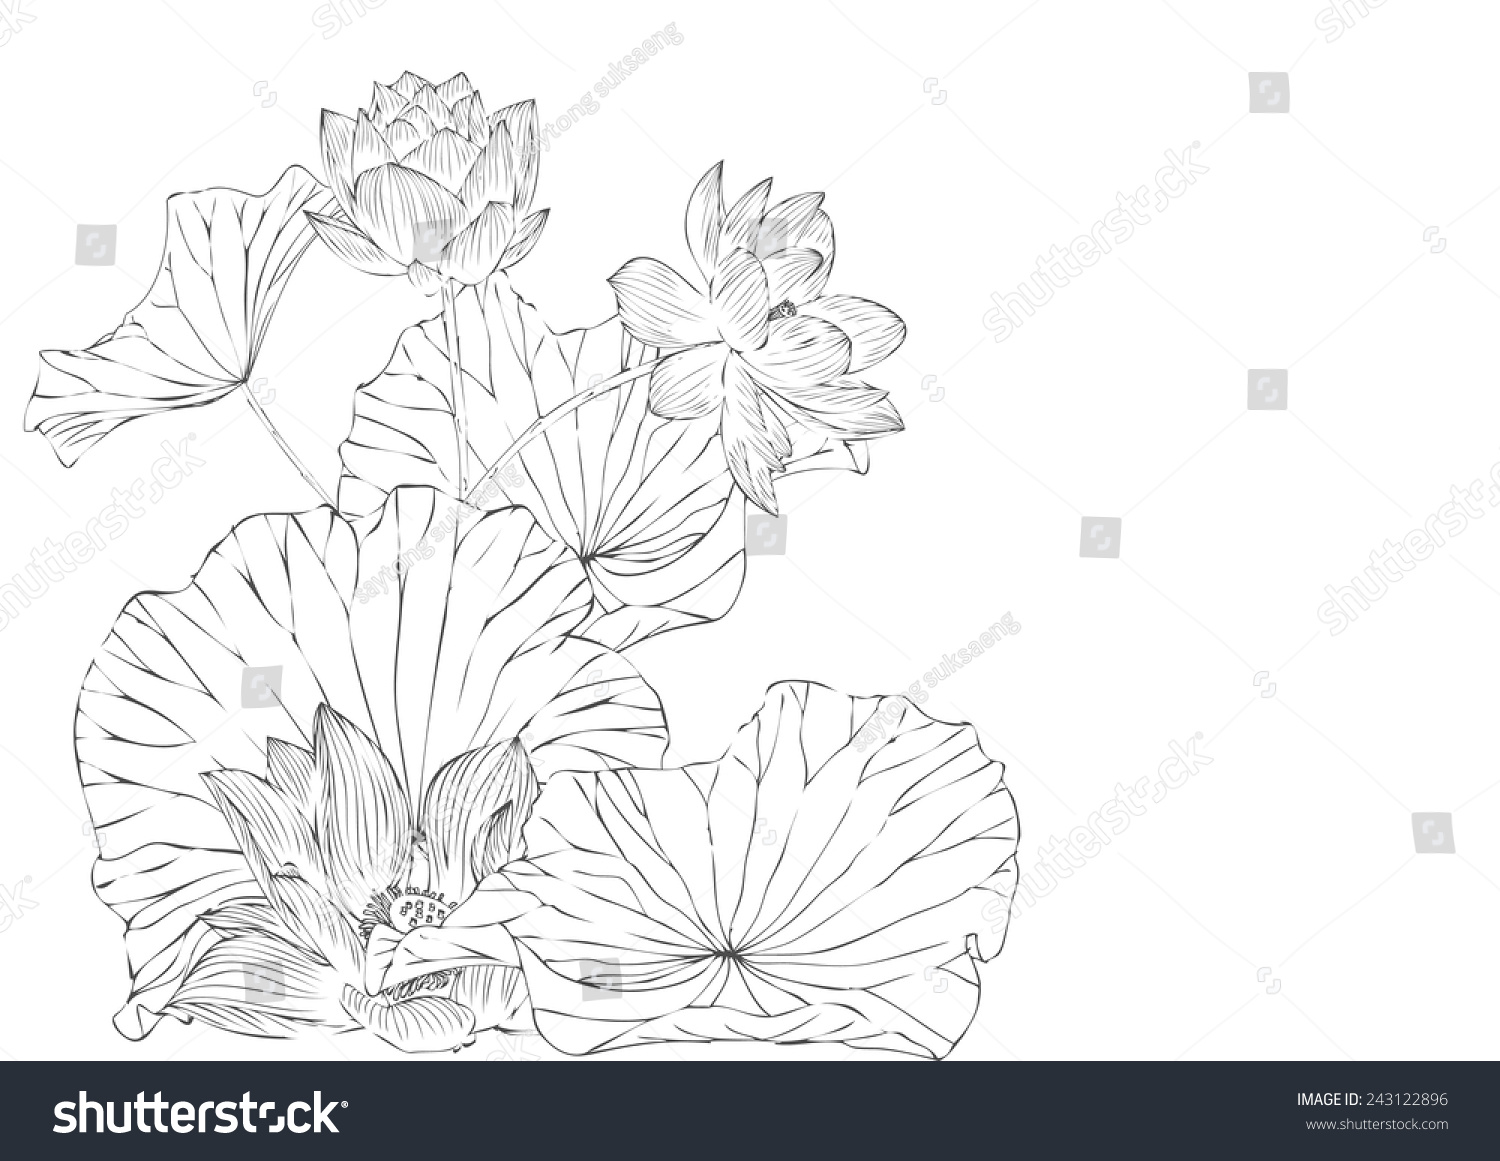 Lotus vector pattern for background and textabstract lotus symbols id 243122896 izmirmasajfo